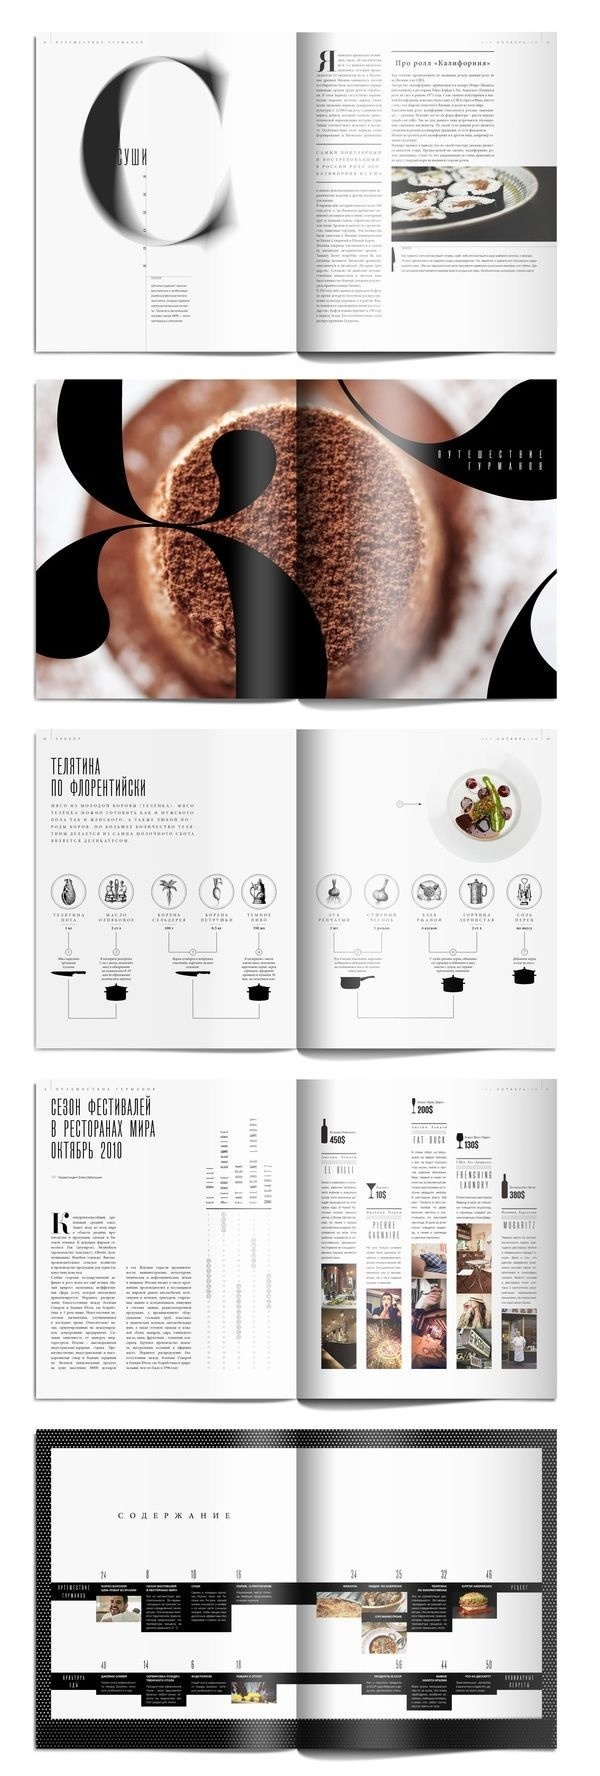 Food Magazine Editorial Design #food #editorial #magazine